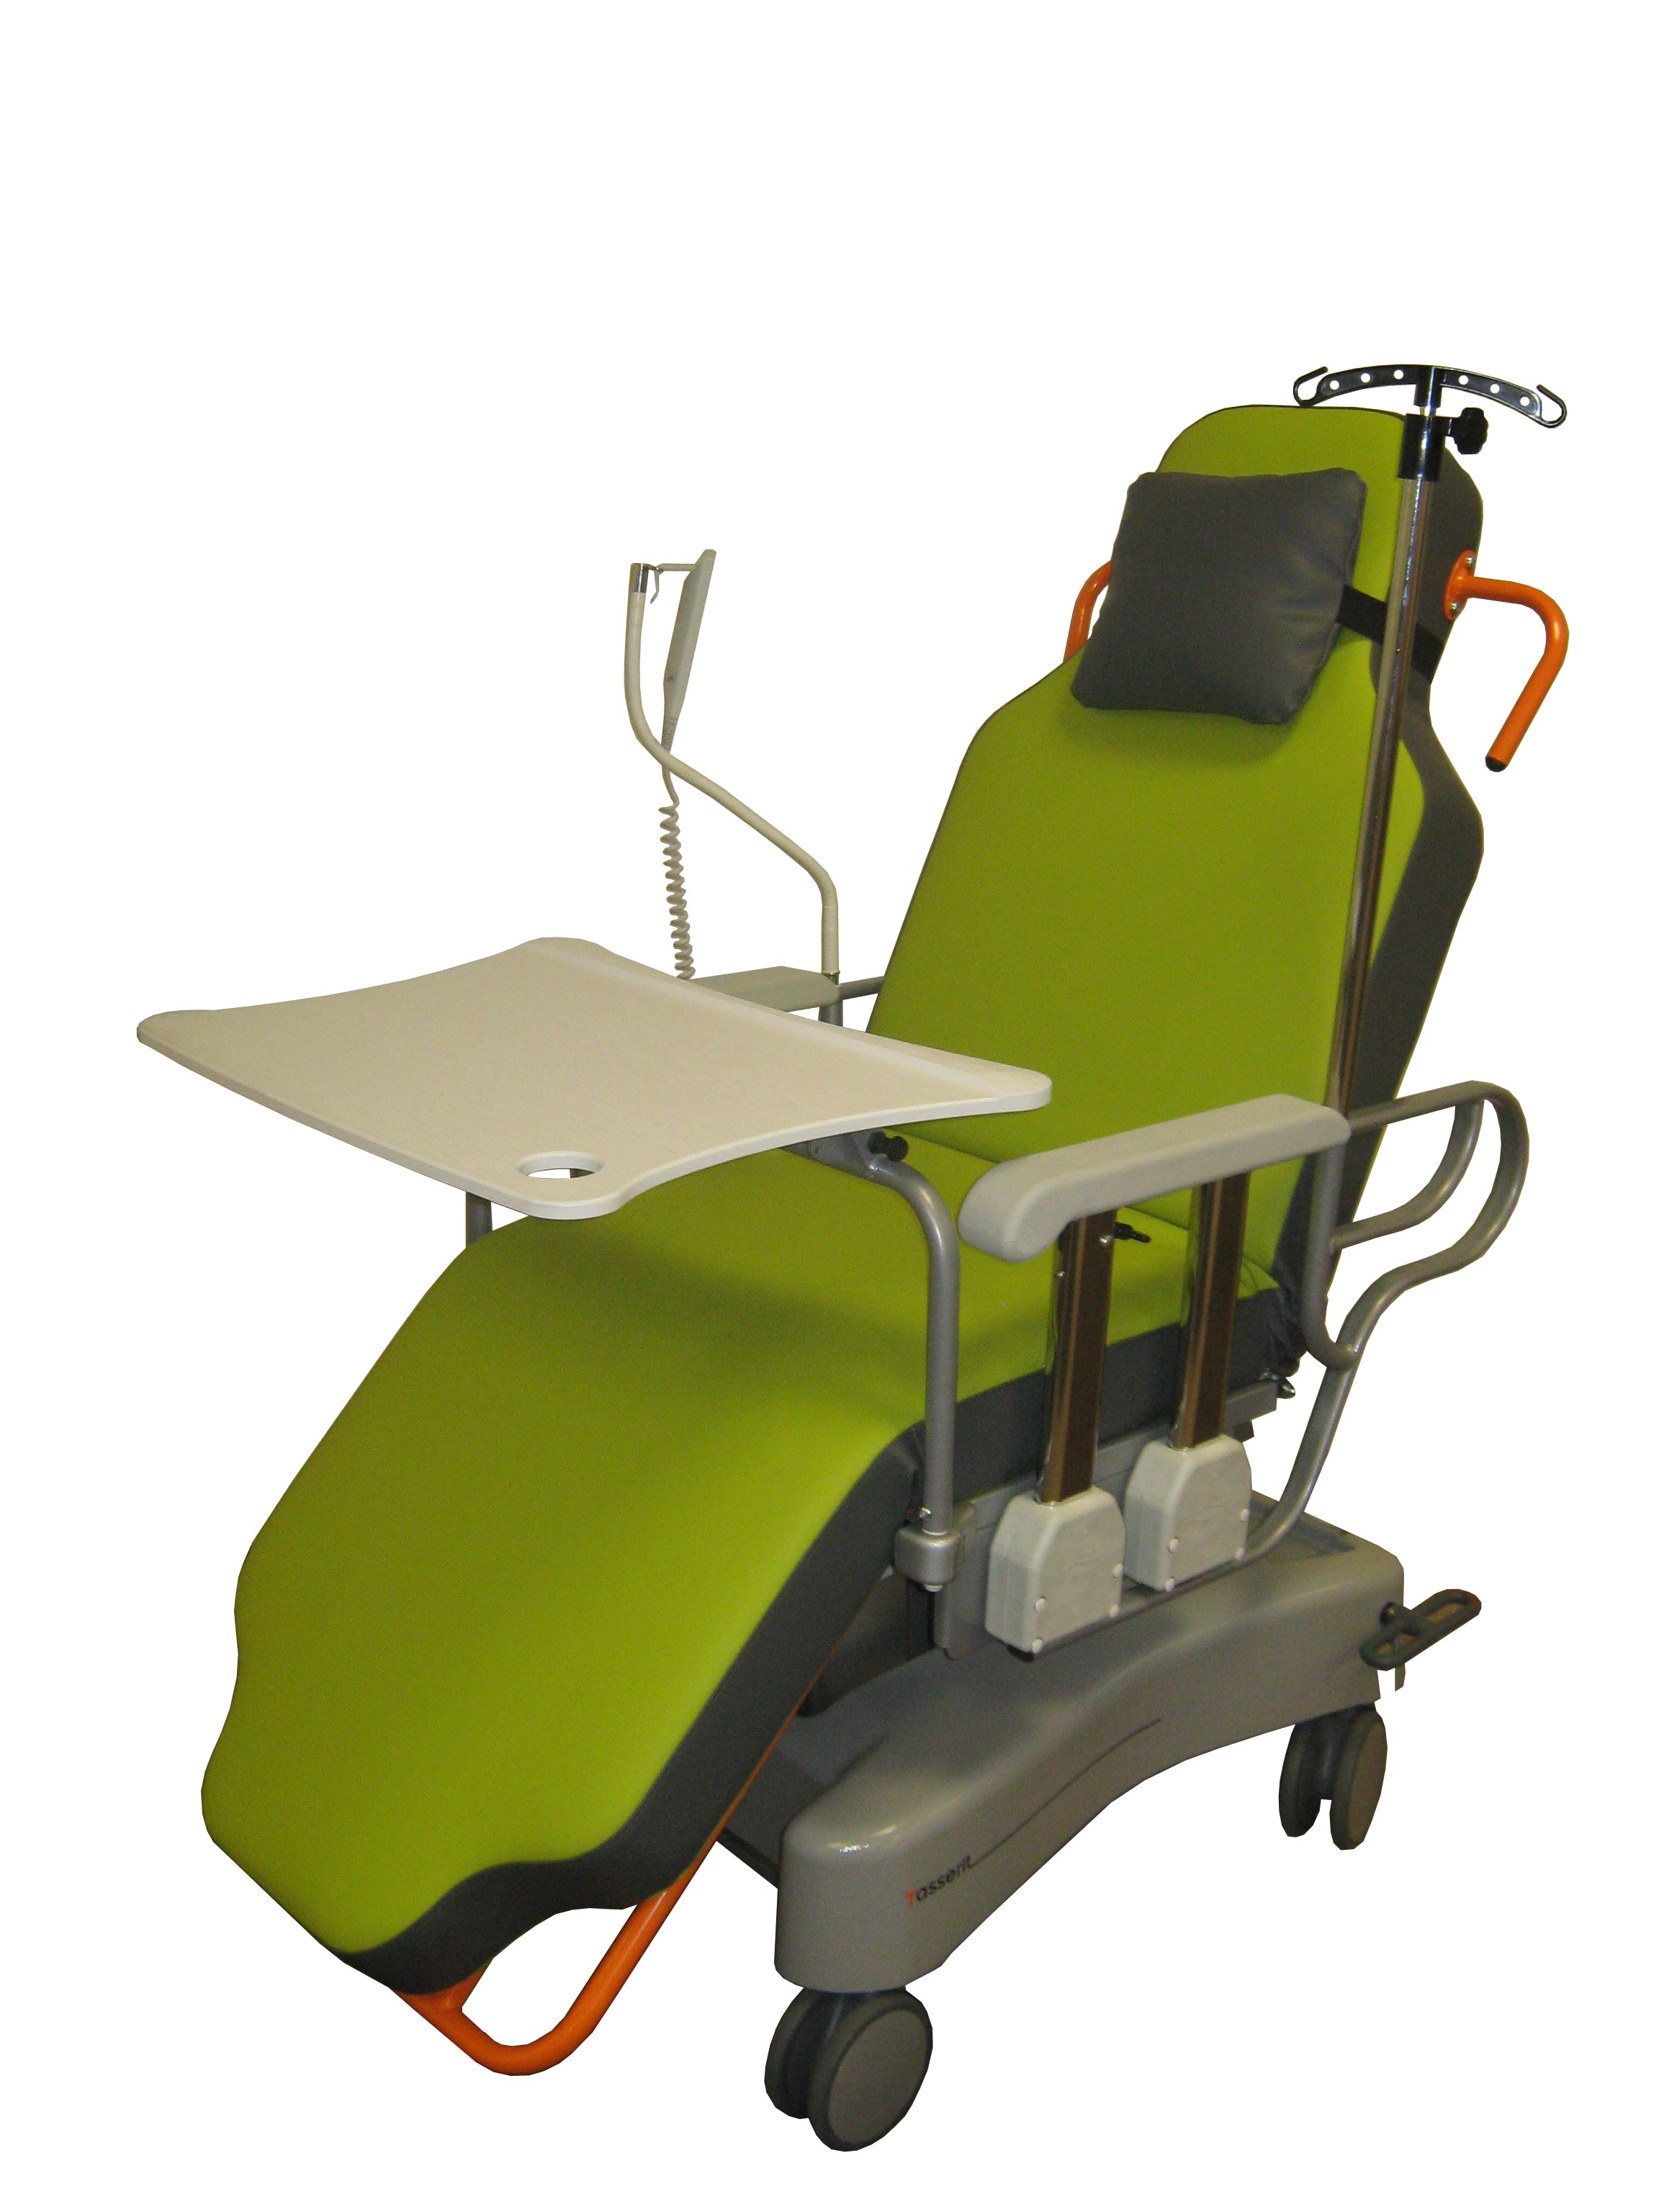 Trans Op Chair for ambulatory surgery by Sotec Medical Tasserit